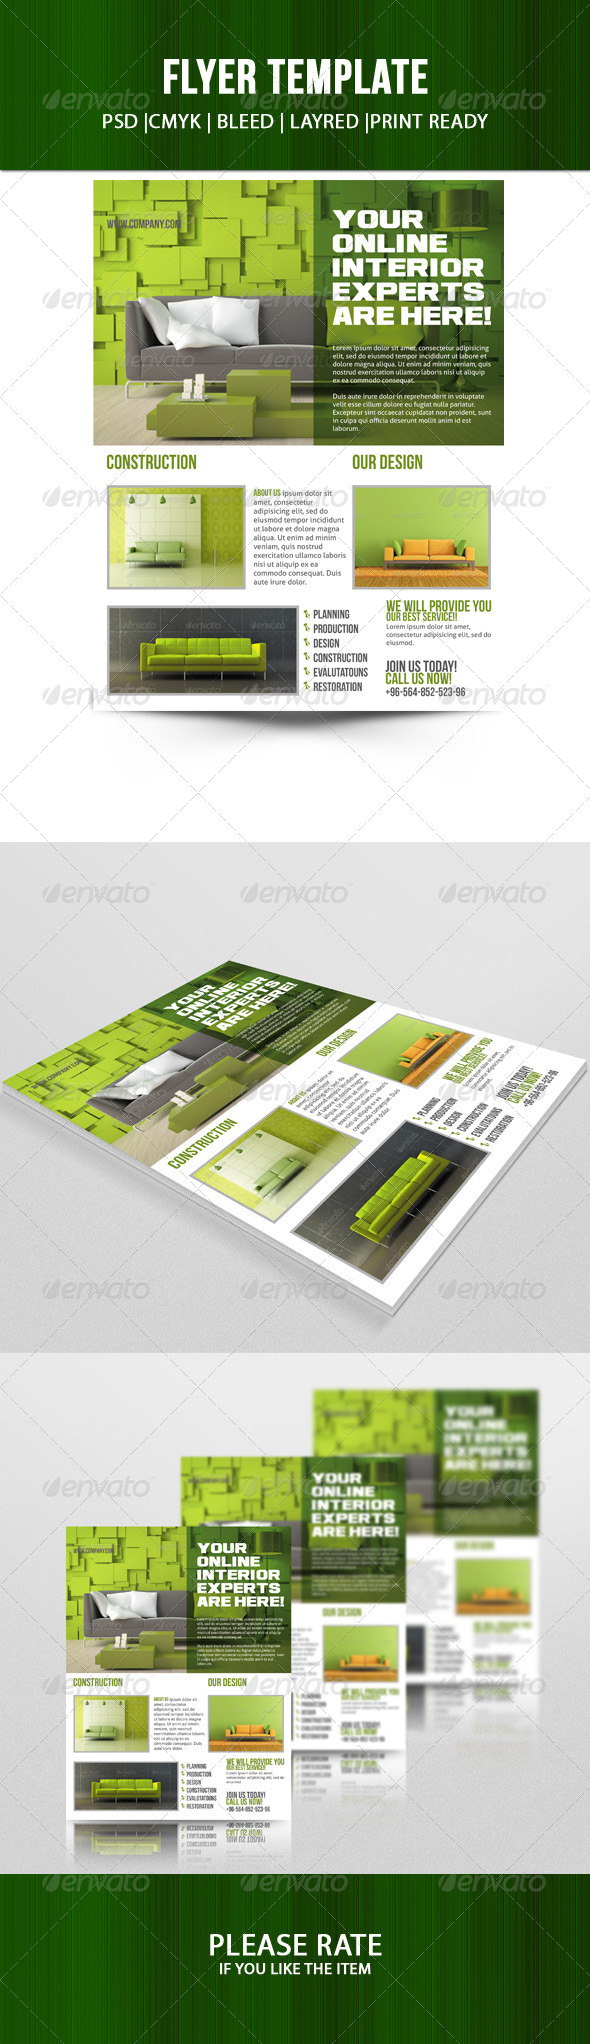 Interior Flyer Template - Corporate Flyers